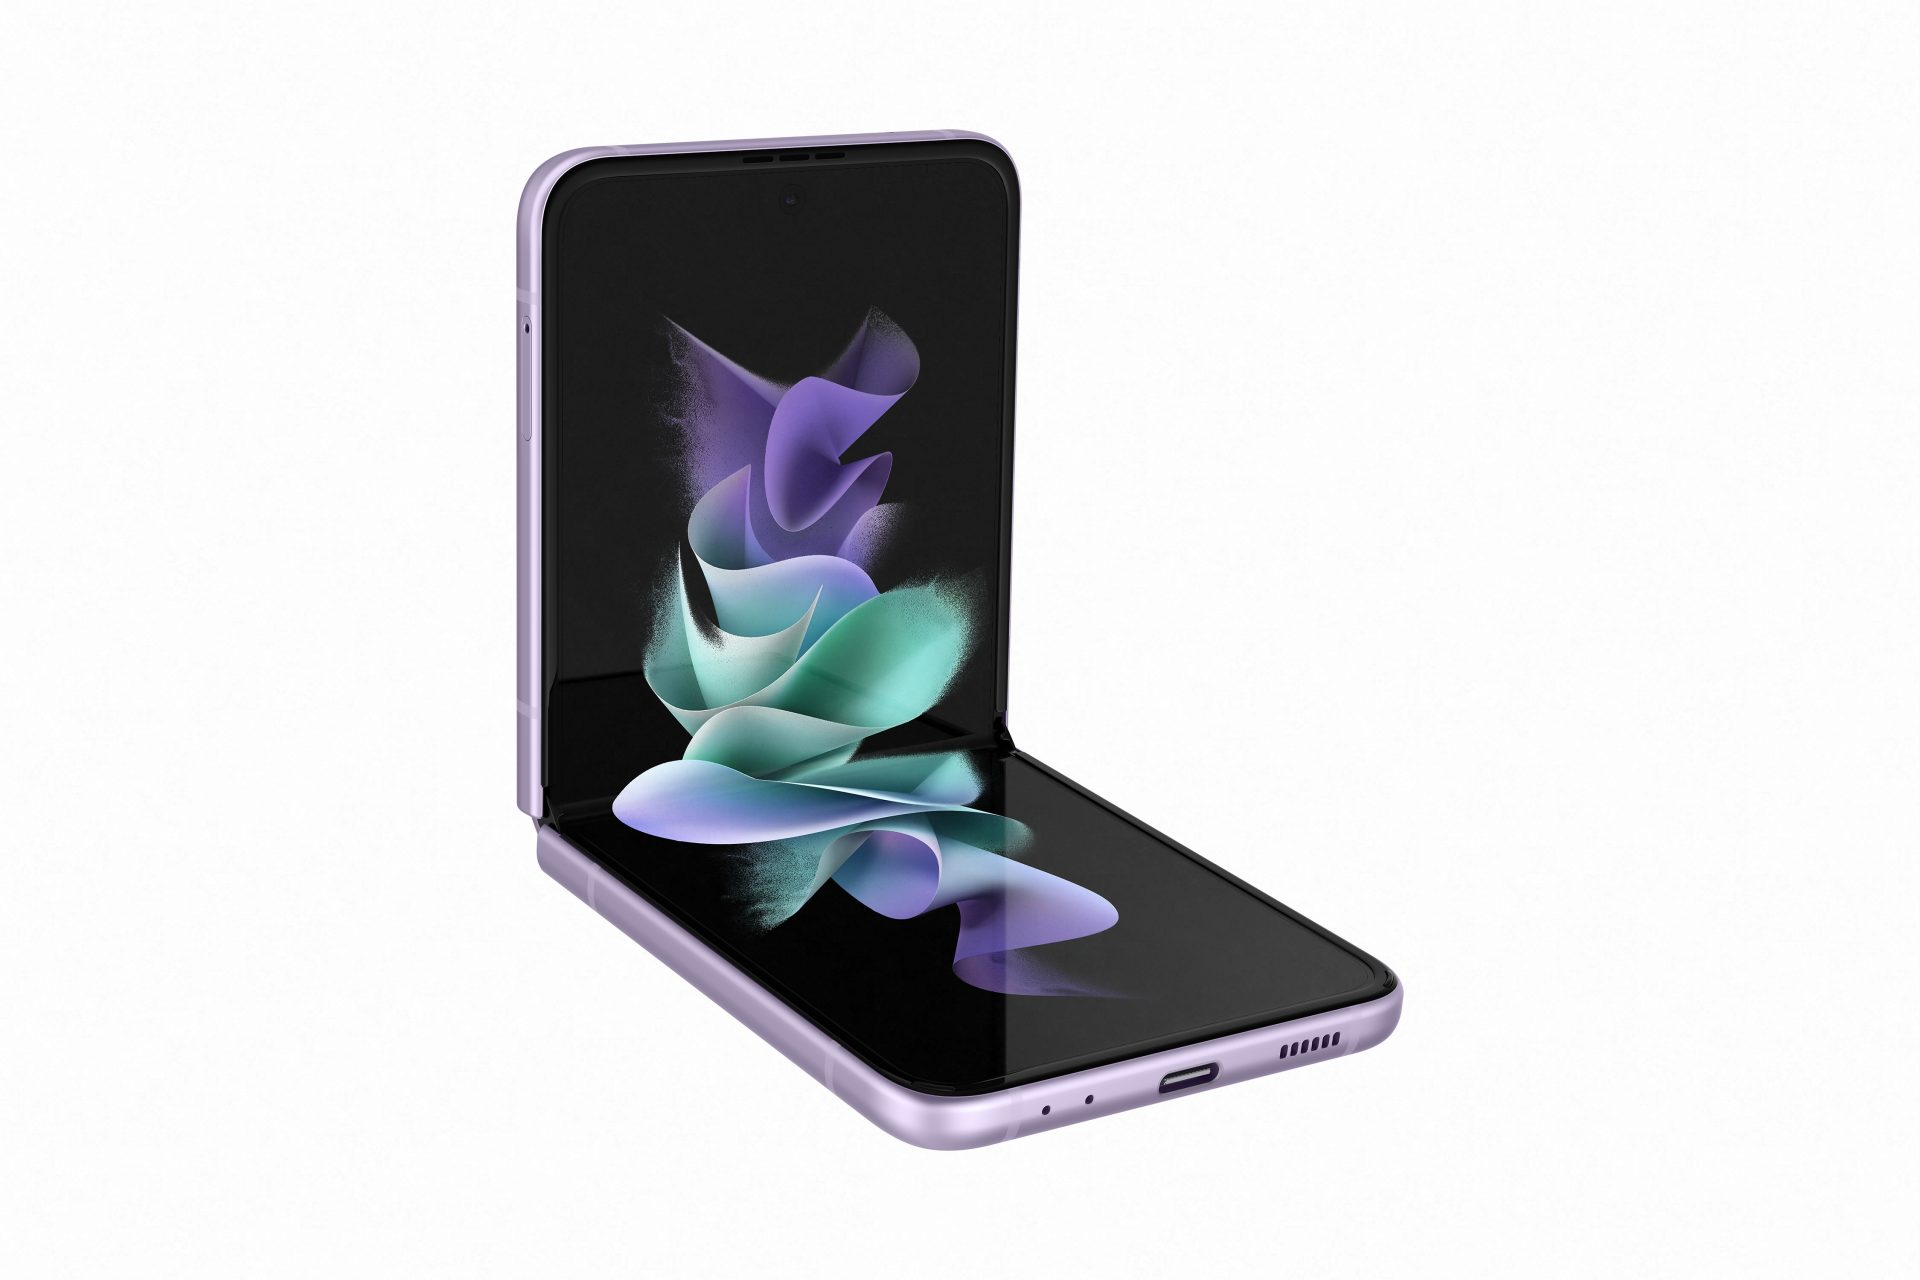 an illustrative image of the Samsung Galaxy Z Flip3 flipped open and placed on a tabletop